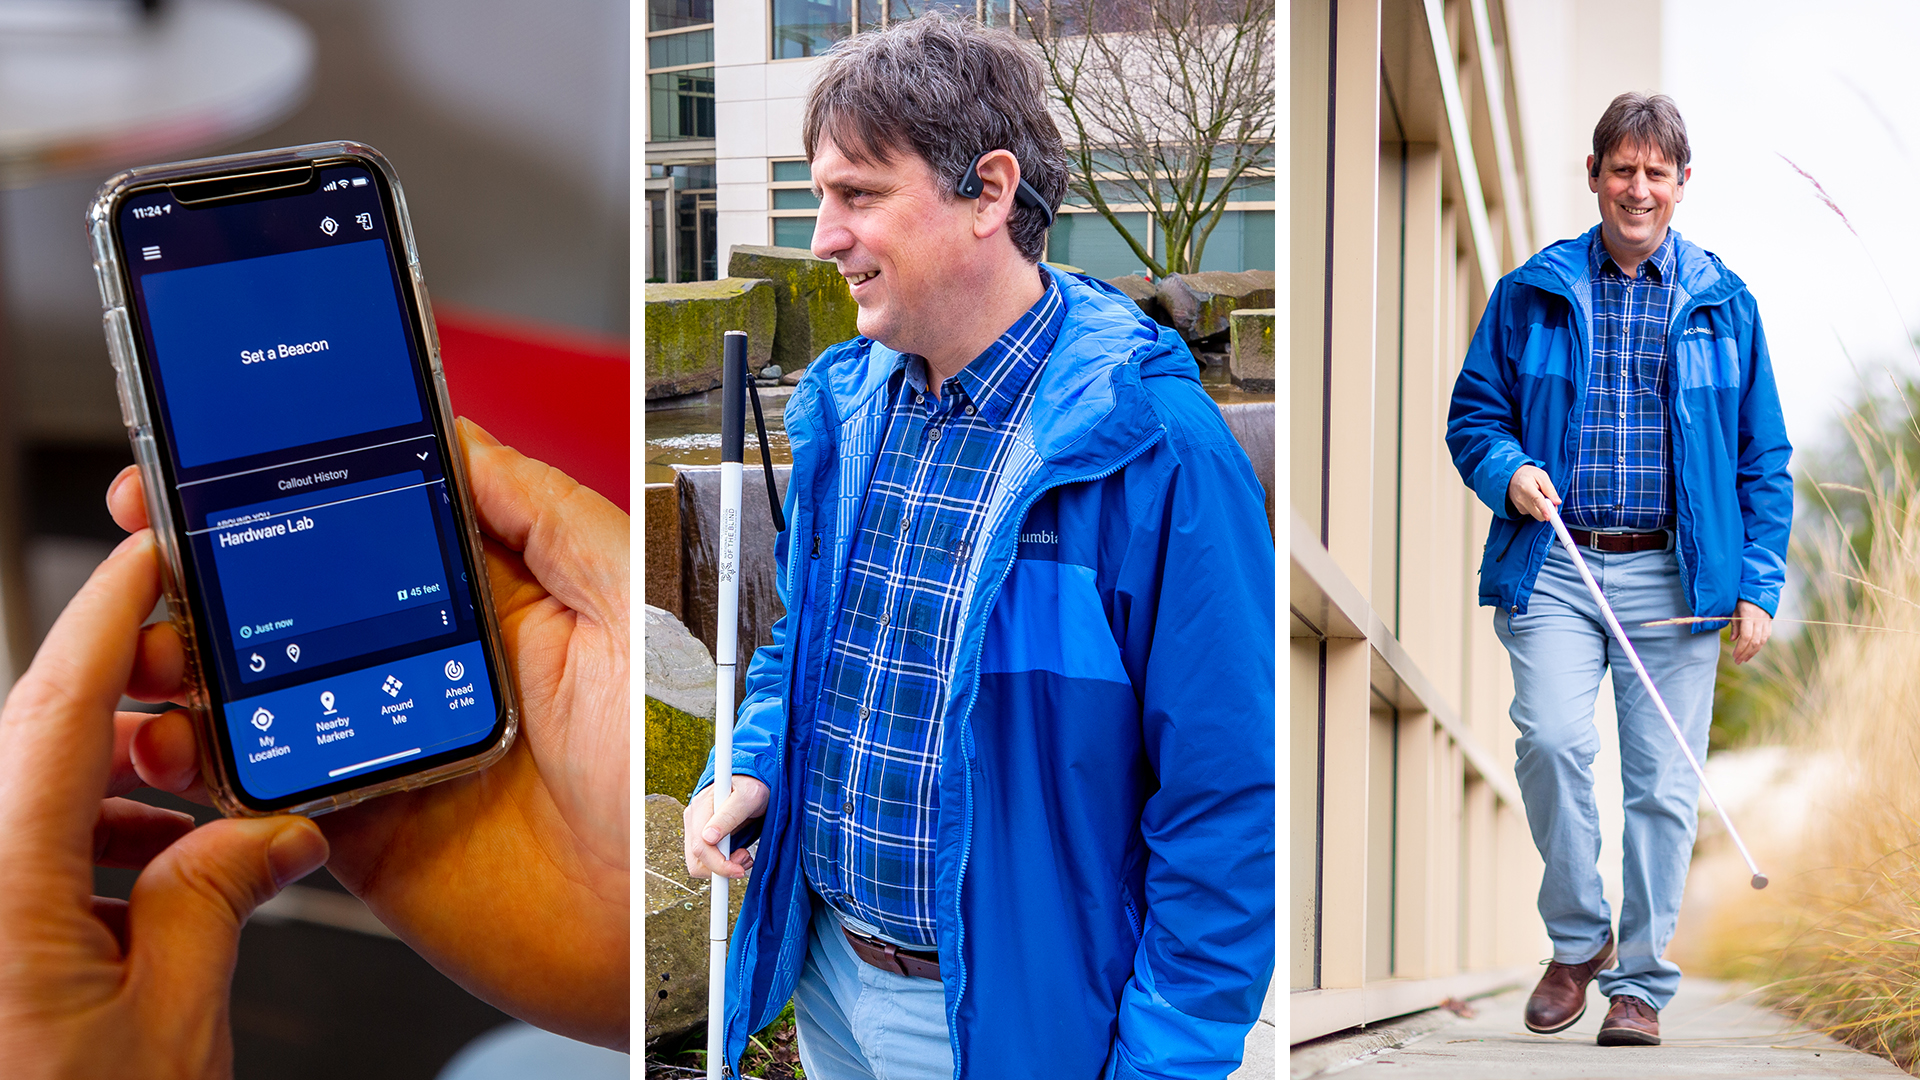 Three panels of images showing Amos Miller and the Soundscape app: Left, holding a mobile phone with app displayed; Middle, standing close up showing audio headphones; Right, Amos Miller walking towards the camera using the app